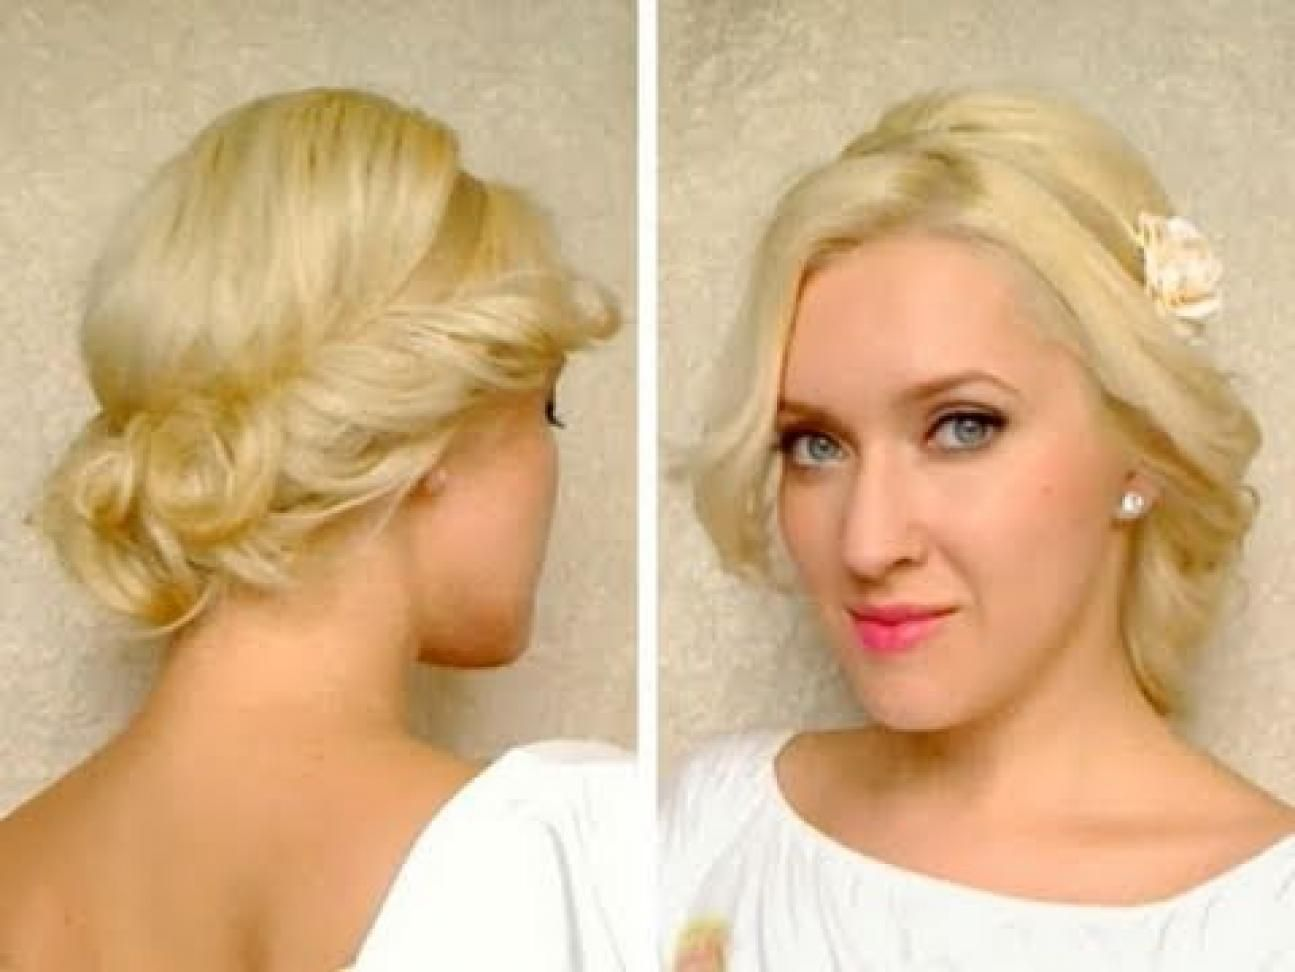 Swell Updo Curly Hair And Hairstyles For Medium Hair On Pinterest Short Hairstyles Gunalazisus